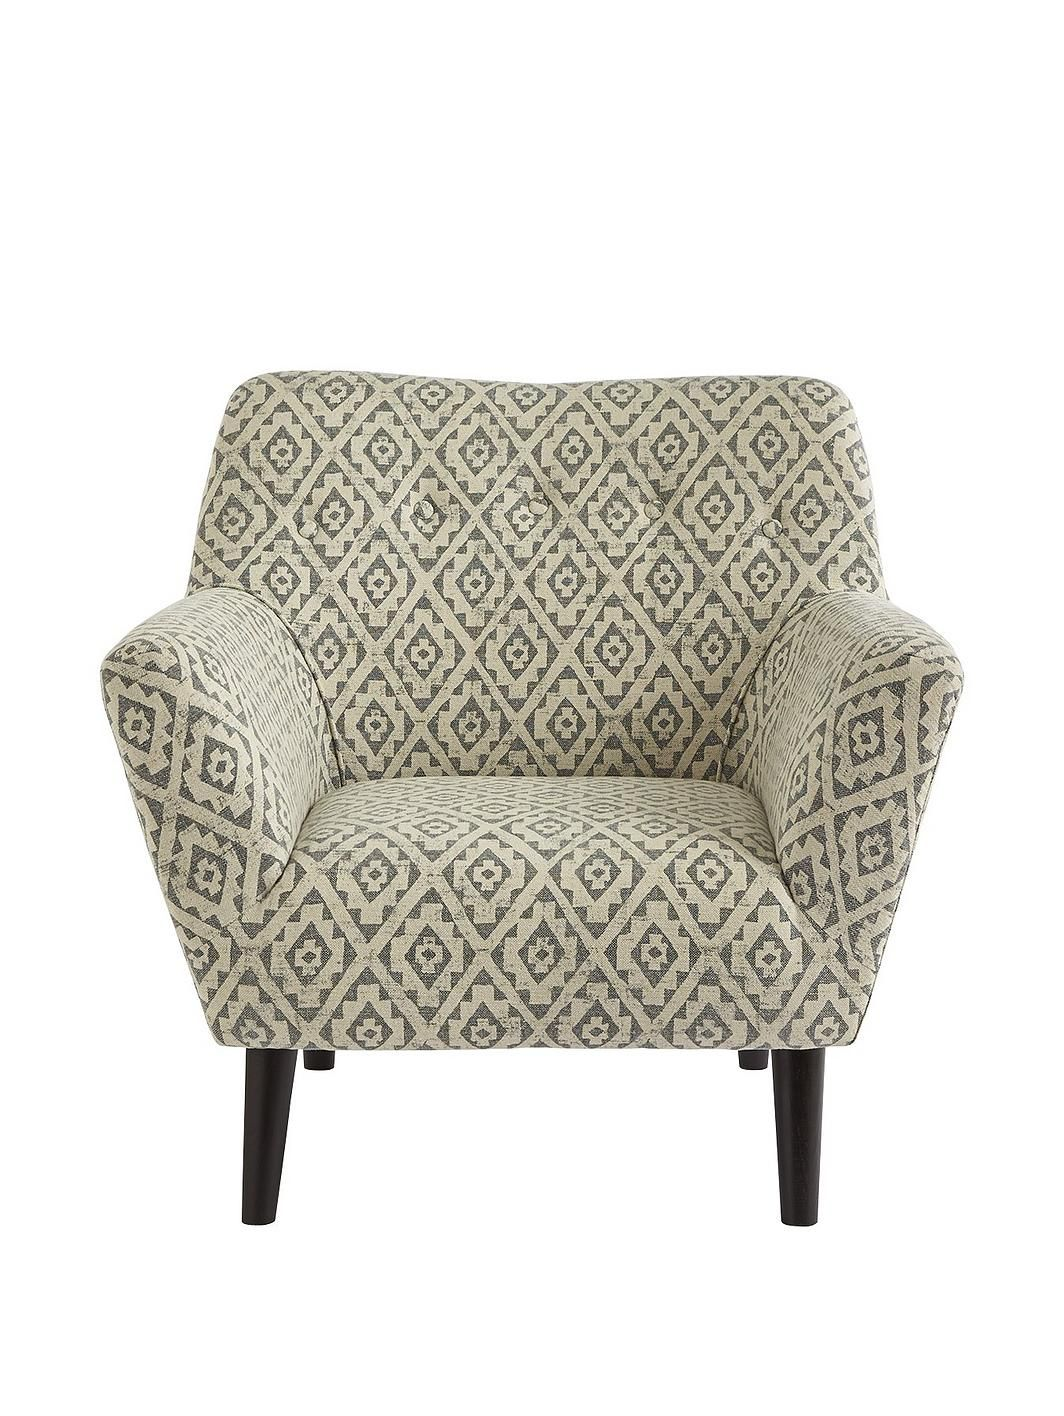 Fabric Echota Accent Chair Accent Chairs Furniture Chair